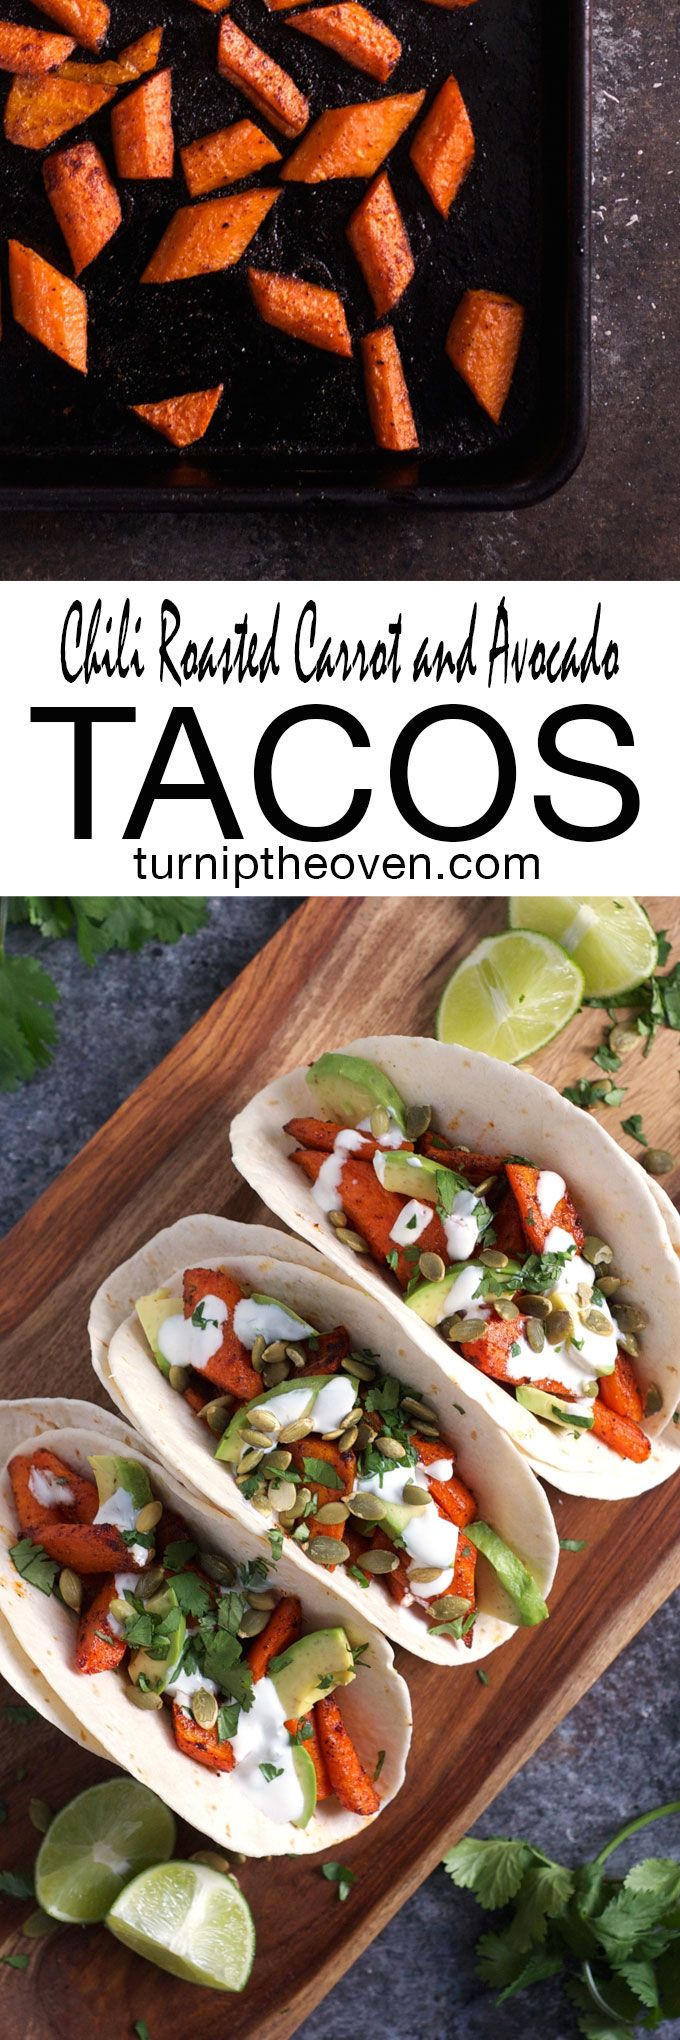 Chili Roasted Carrot and Avocado Tacos are the perfect vegetarian weeknight meal. Topped with crunchy pumpkin seeds and a spicy jalapeño lime sour cream, you'll never miss the meat!